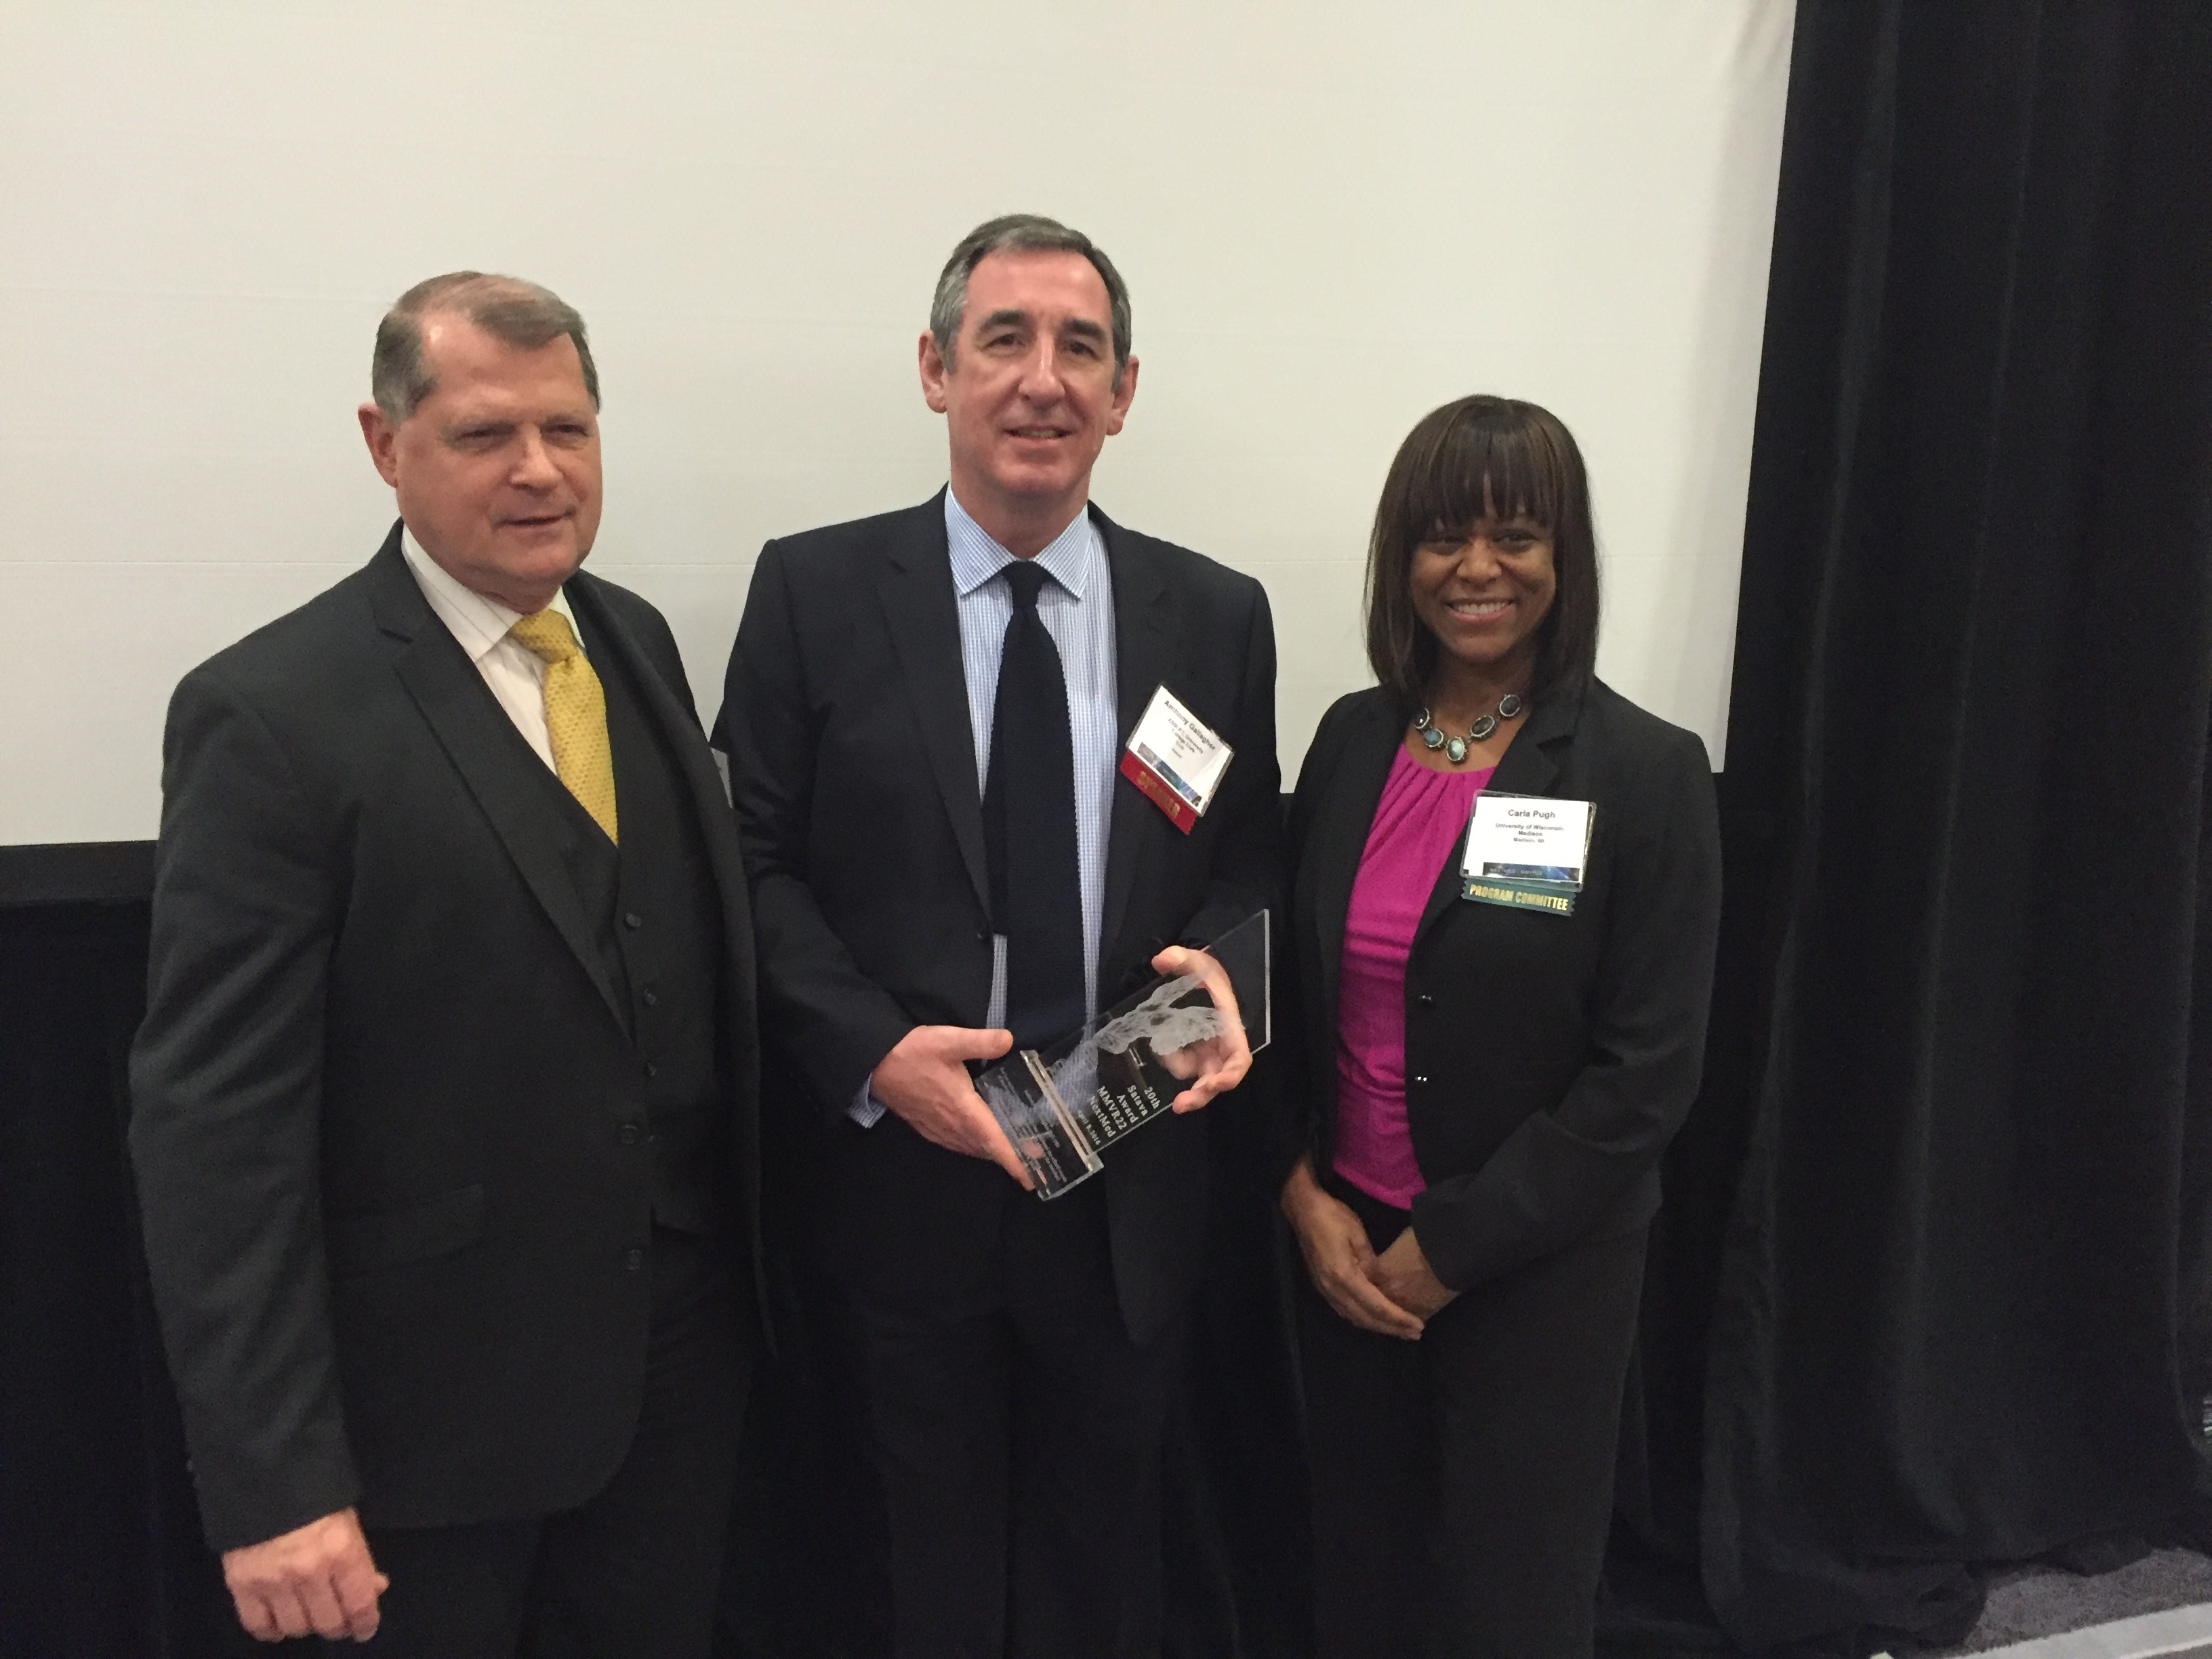 Dr. Gallagher Receives Satava Award for Advance Technology in Medicine